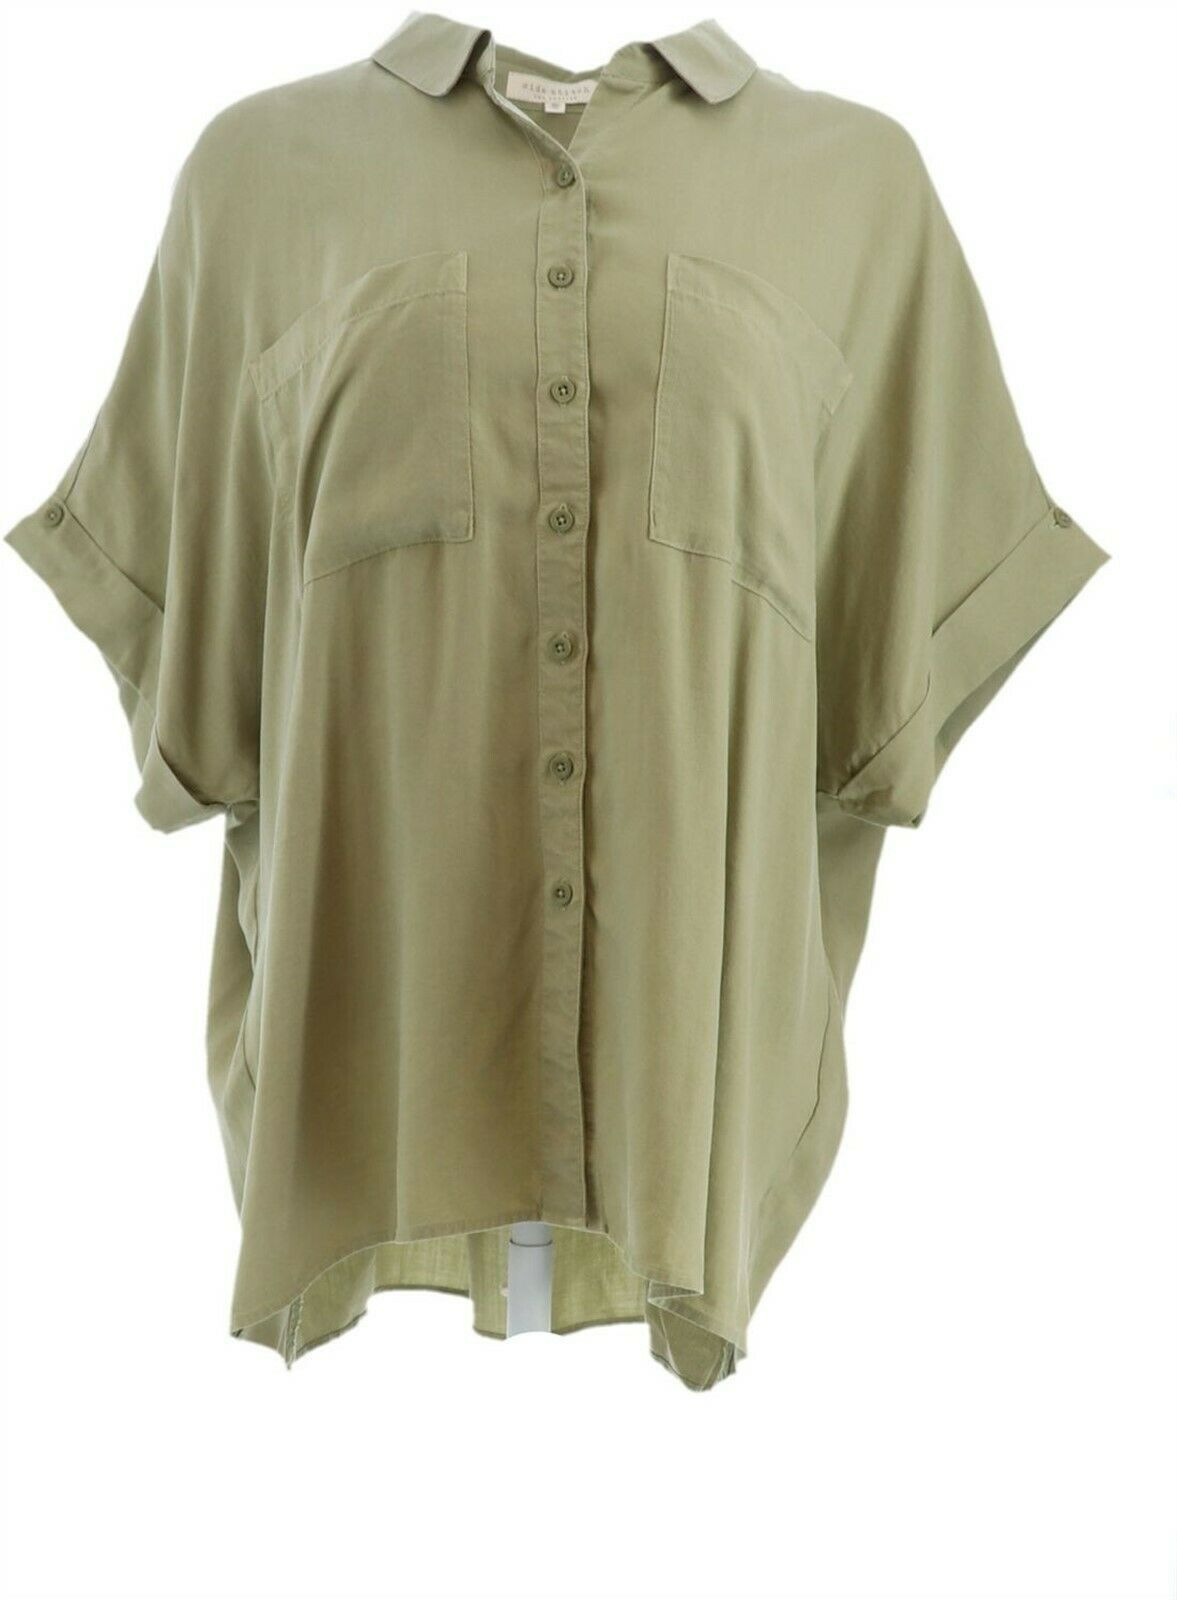 Primary image for Side Stitch Tencera Button Front Short-Sleeve Top Lilypad 1X NEW A350095